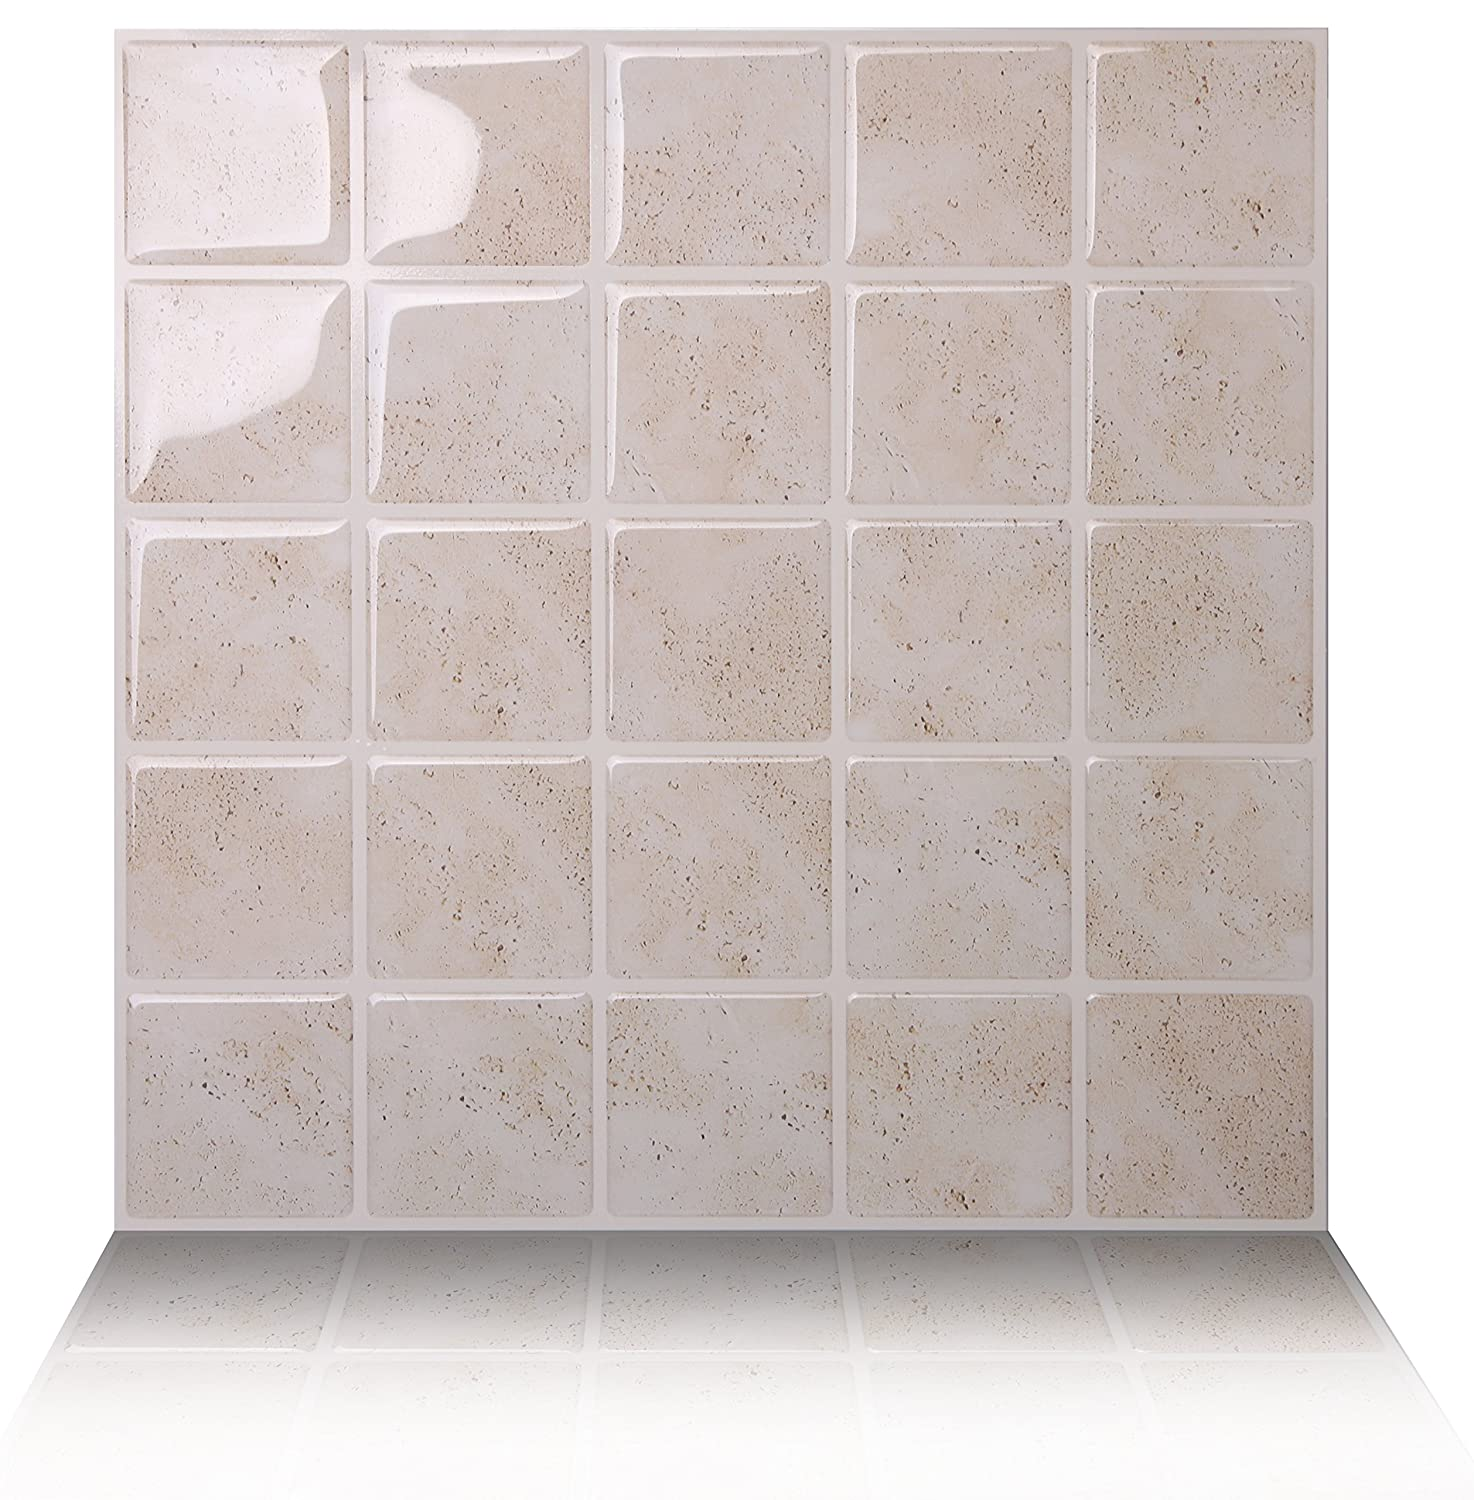 Tic Tac Tiles Anti-mold Peel and Stick Wall Tile in Marmo Travertine (1 Tile) AHN-BSW06